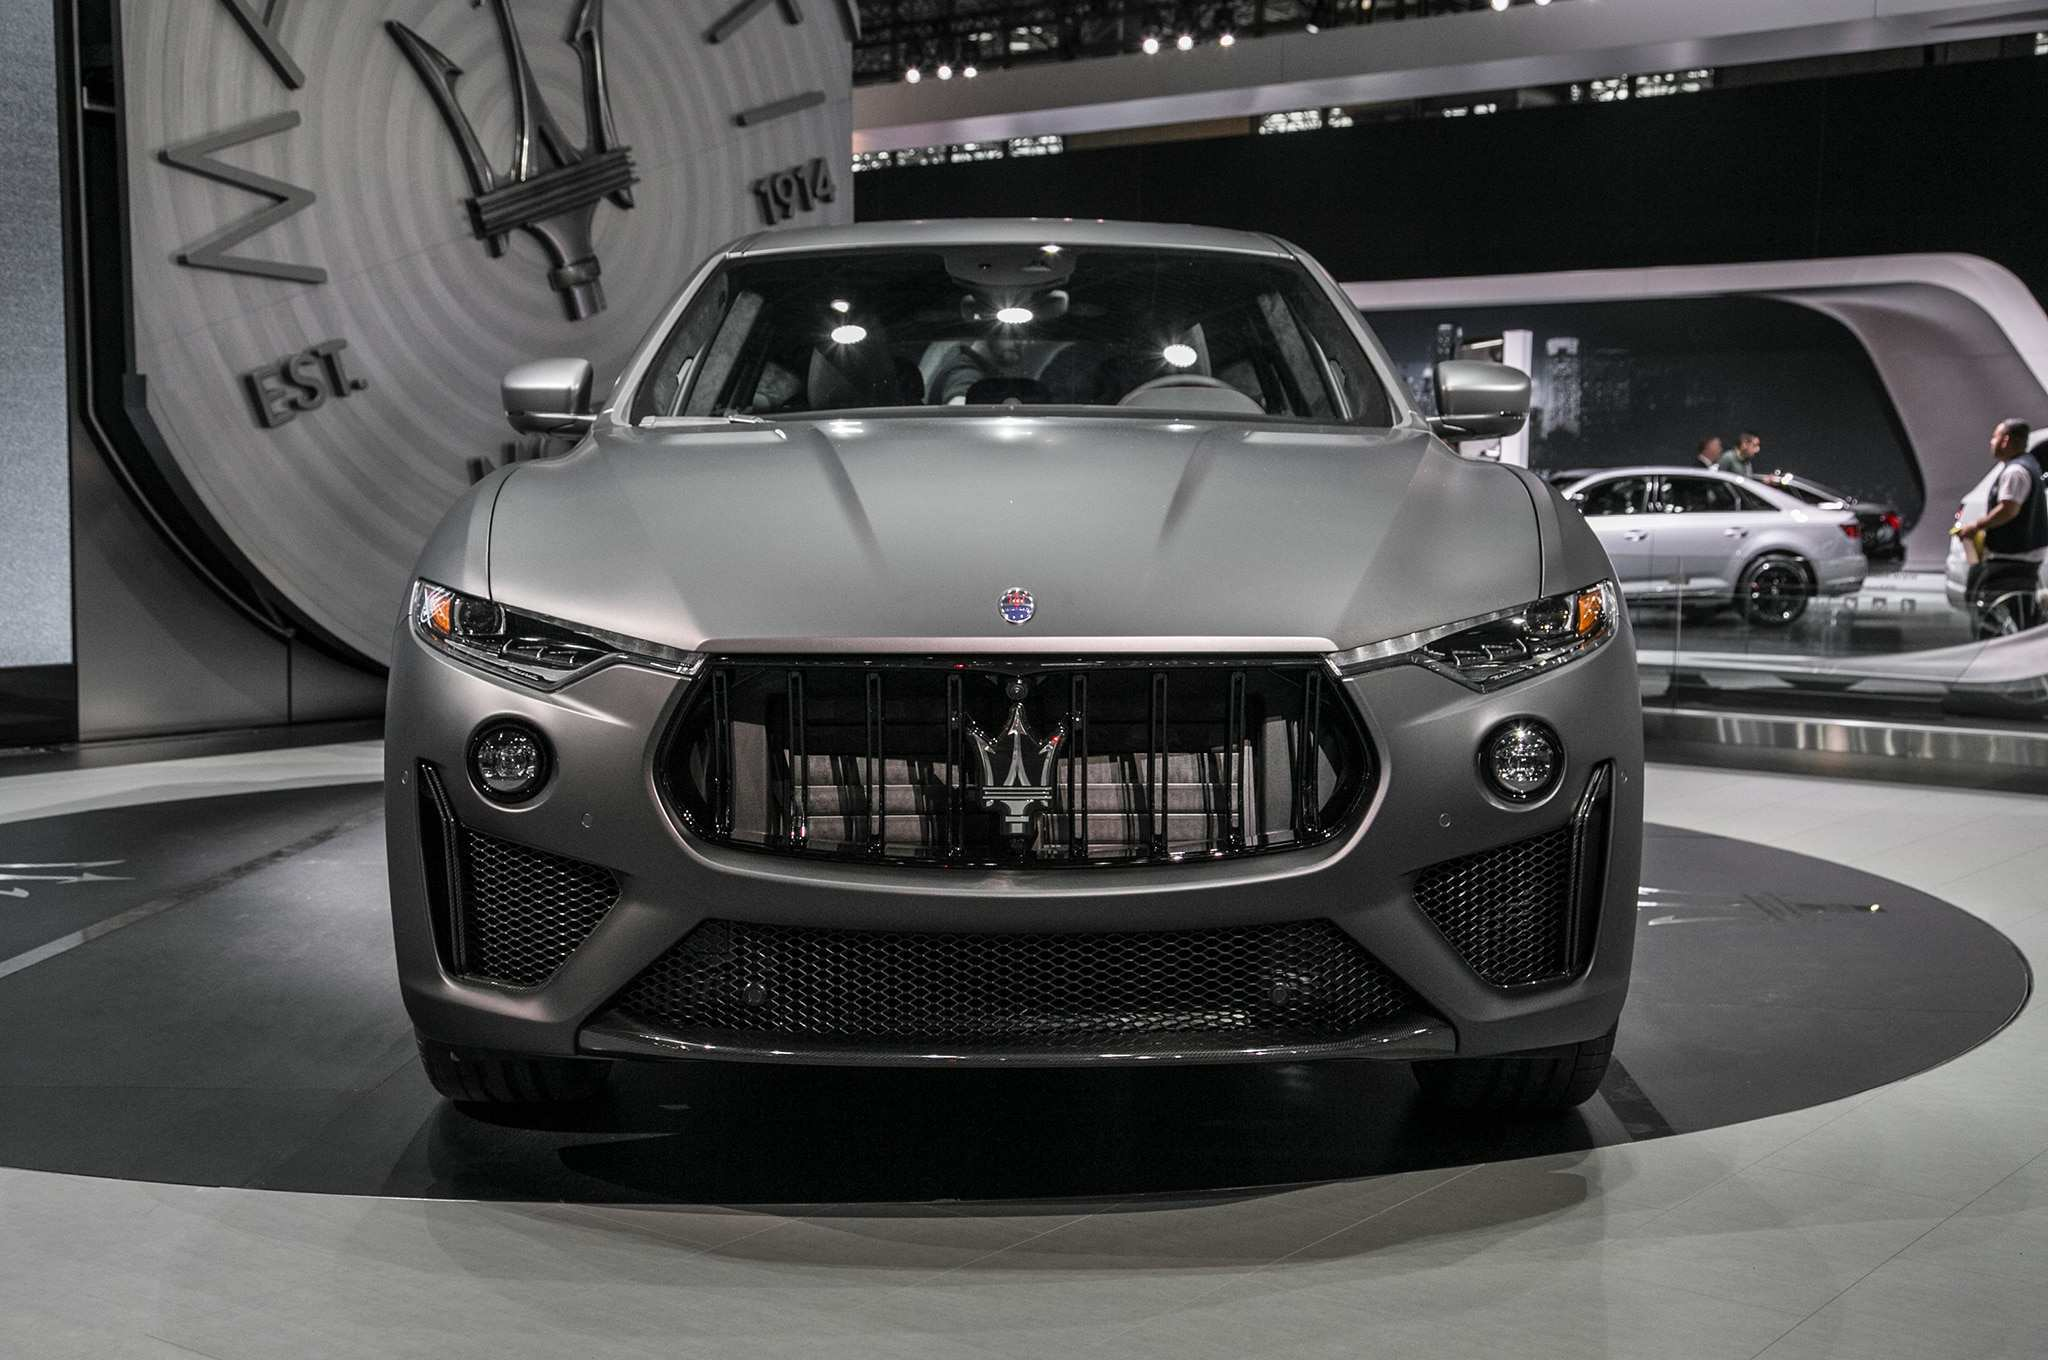 48 Gallery of 2019 Maserati Cost Speed Test for 2019 Maserati Cost